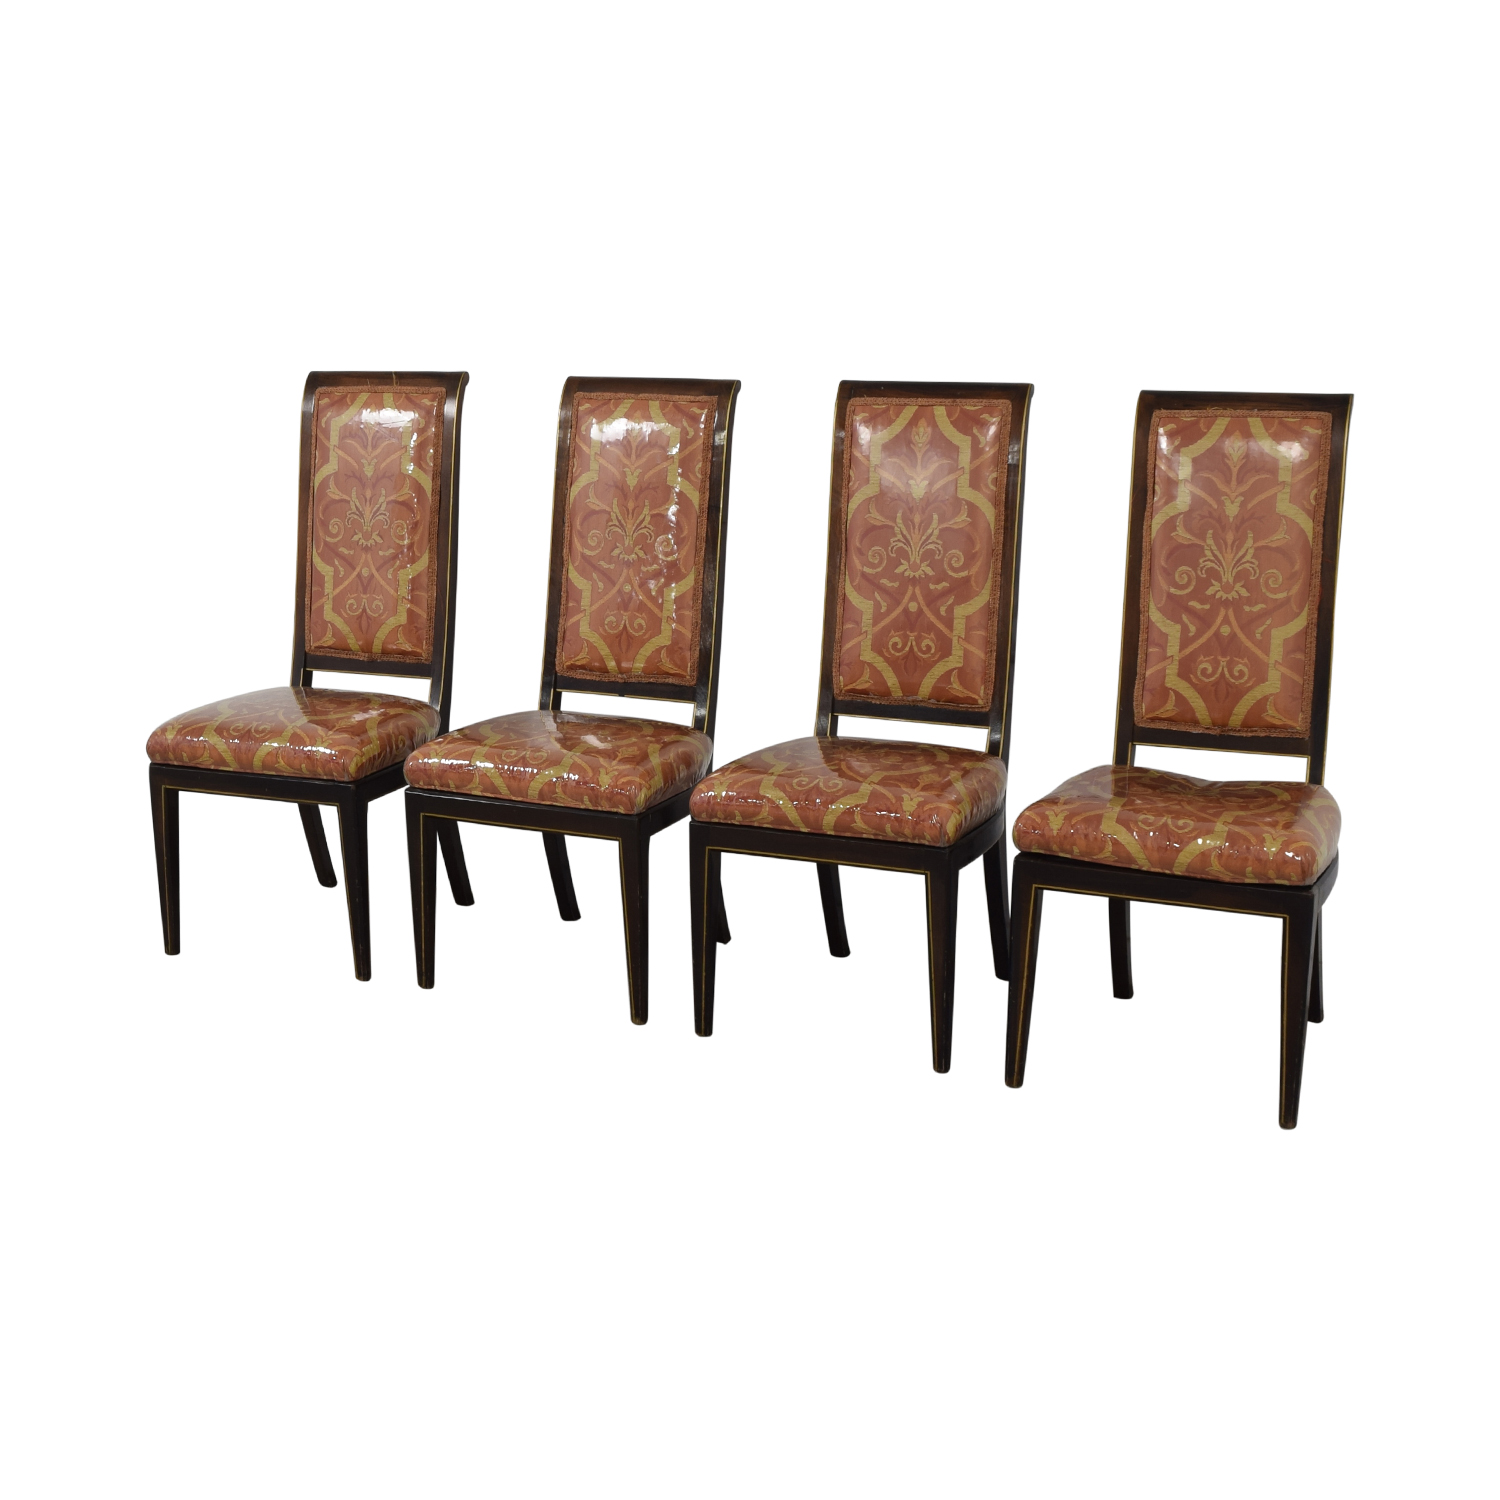 Fabric Dining Chairs on sale